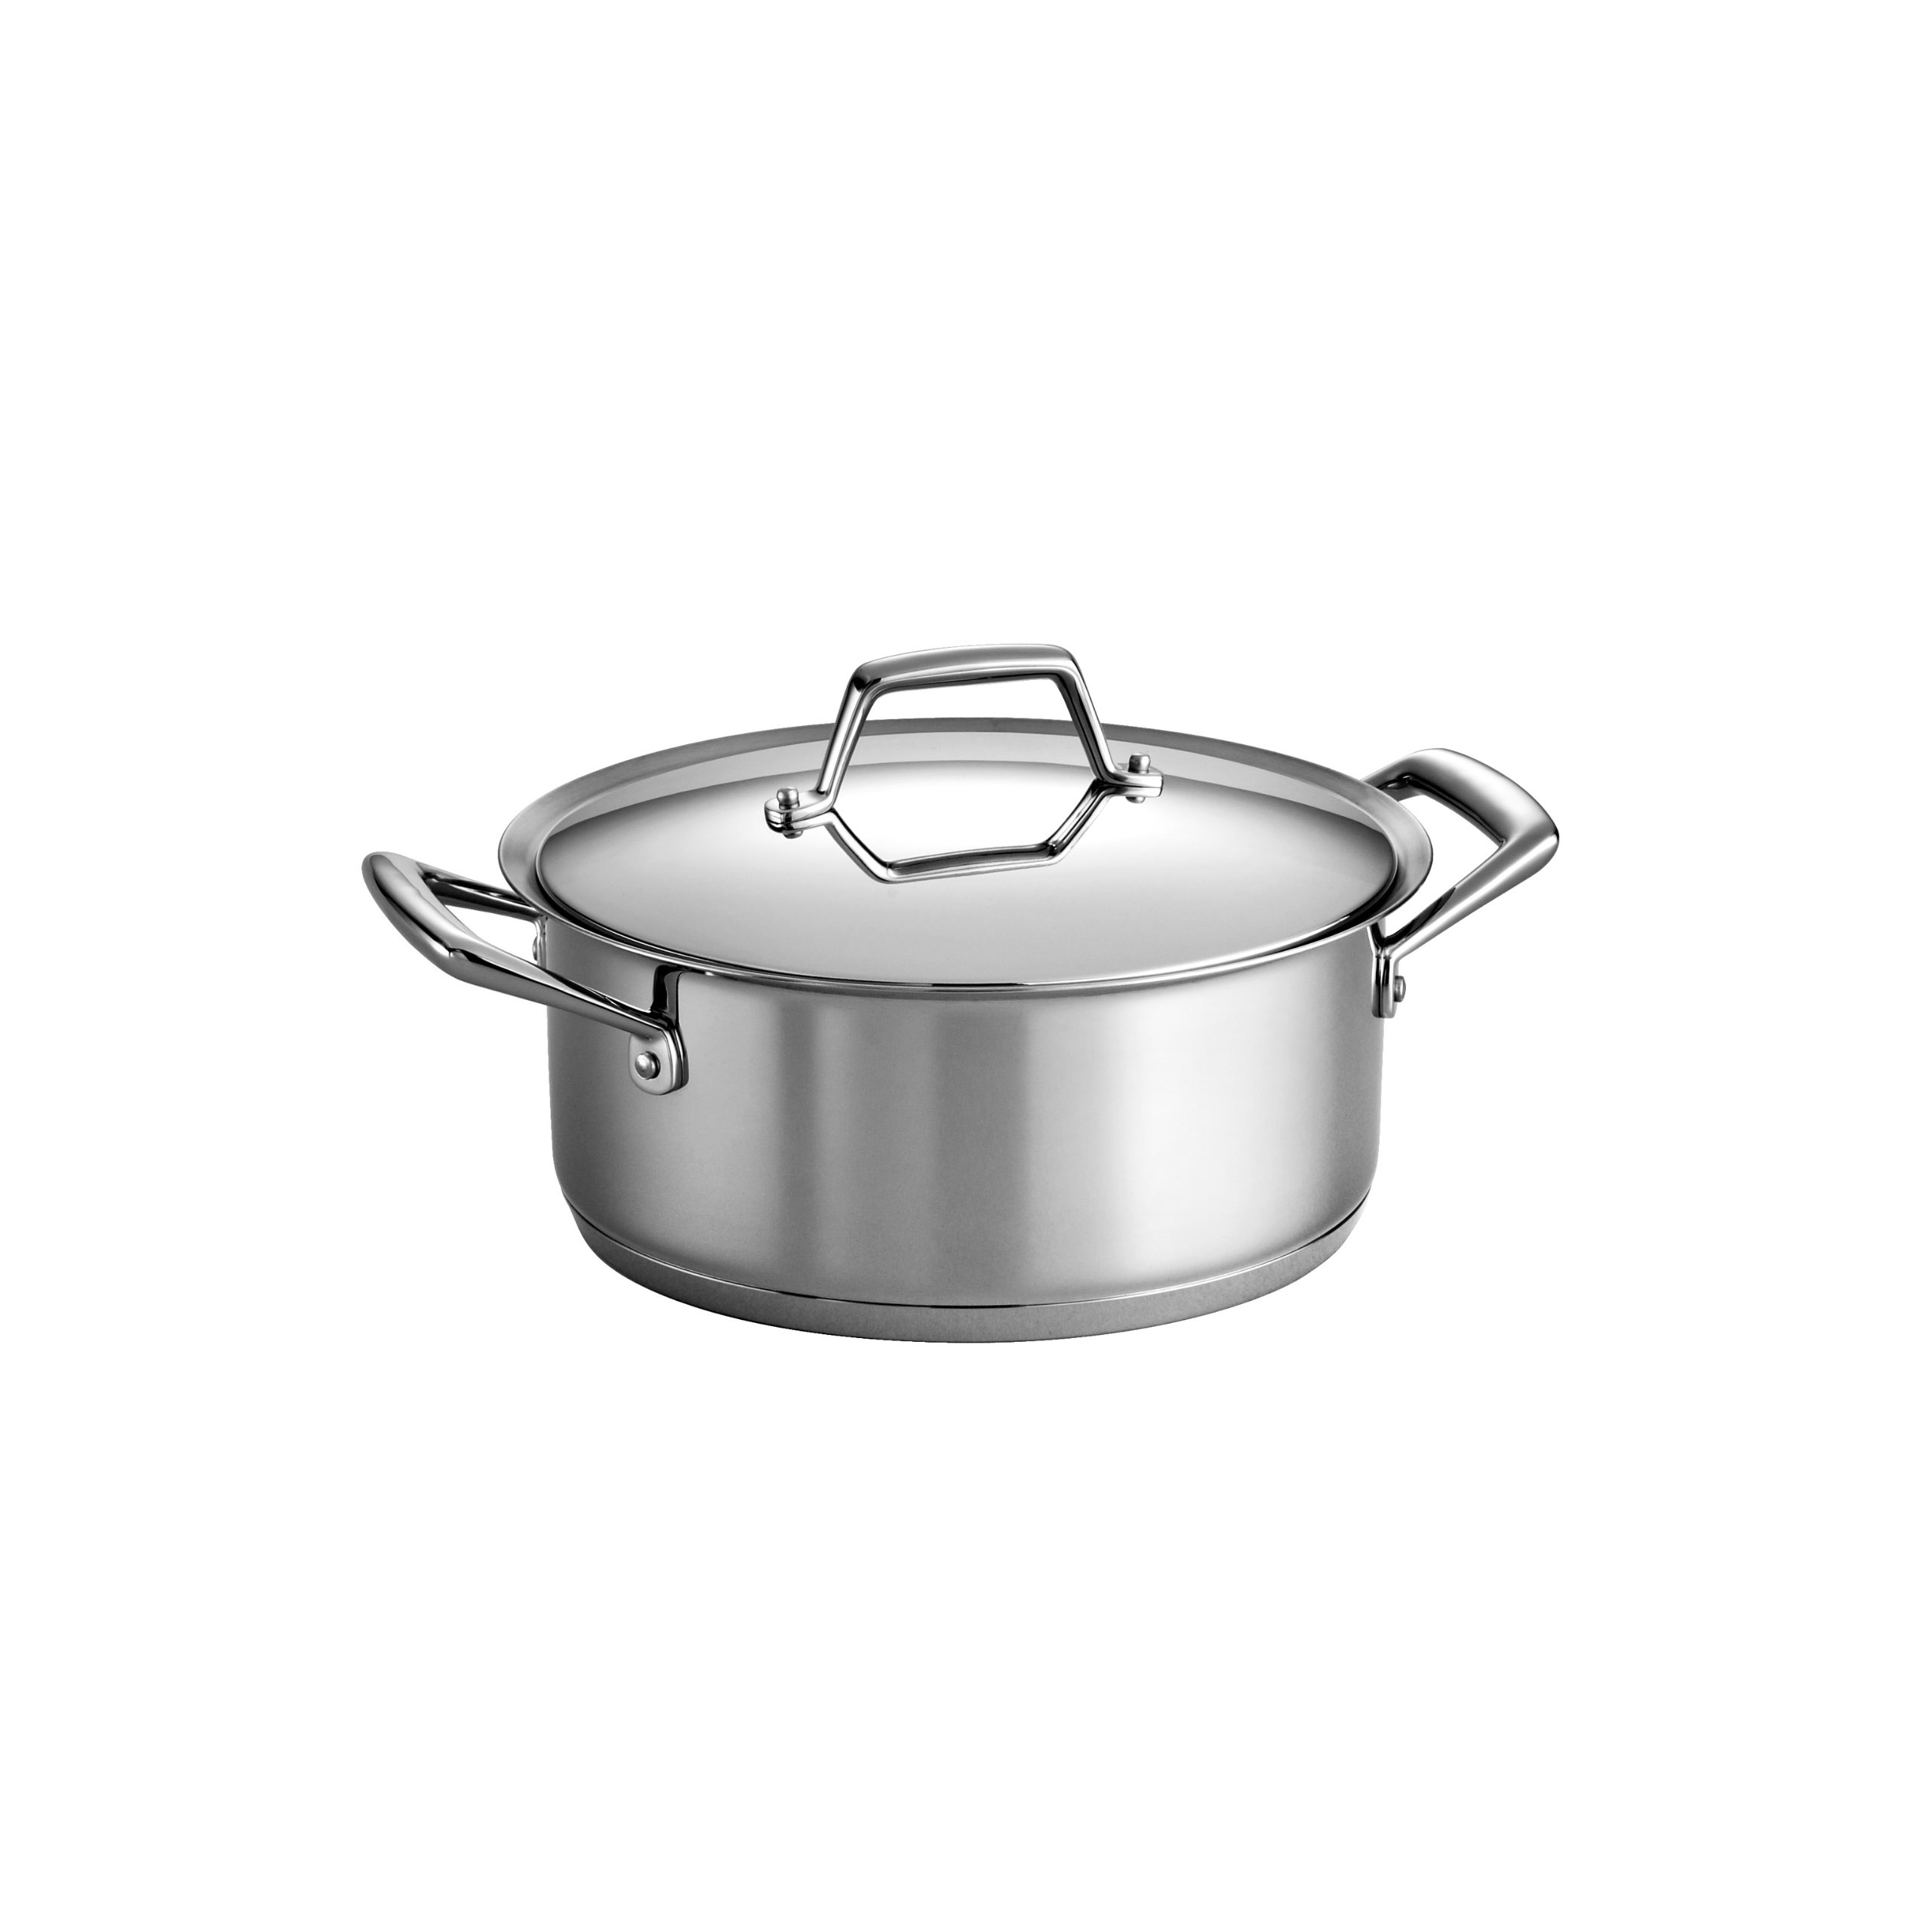 Tramontina 80101/010DS Gourmet Prima Stainless Steel, Induction-Ready, Impact Bonded, Tri-Ply Base Covered Dutch Oven, 5 Quart, Made in Brazil